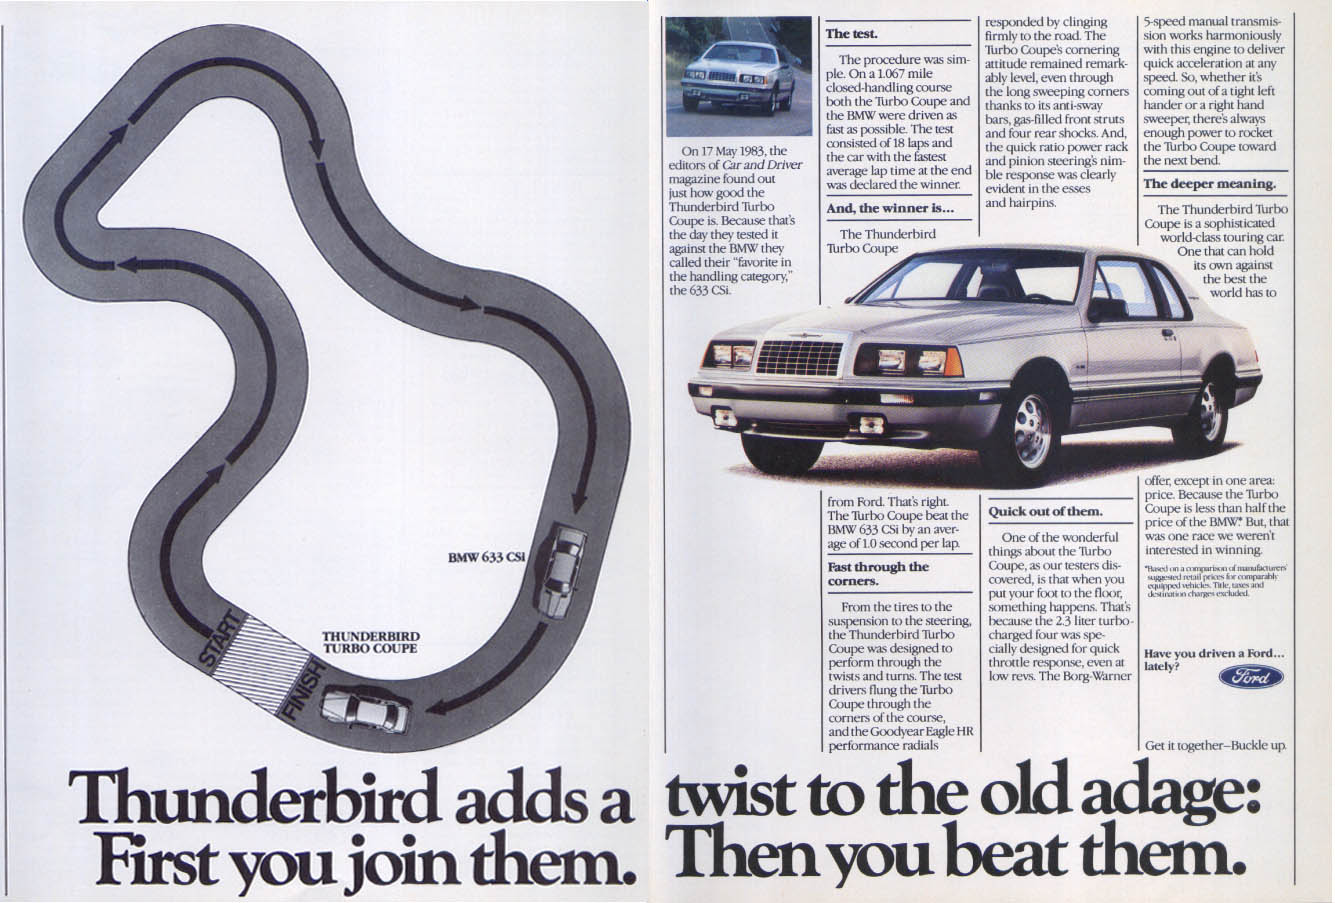 Image for Ford Thunderbird adds twist old adage join beat ad 1984